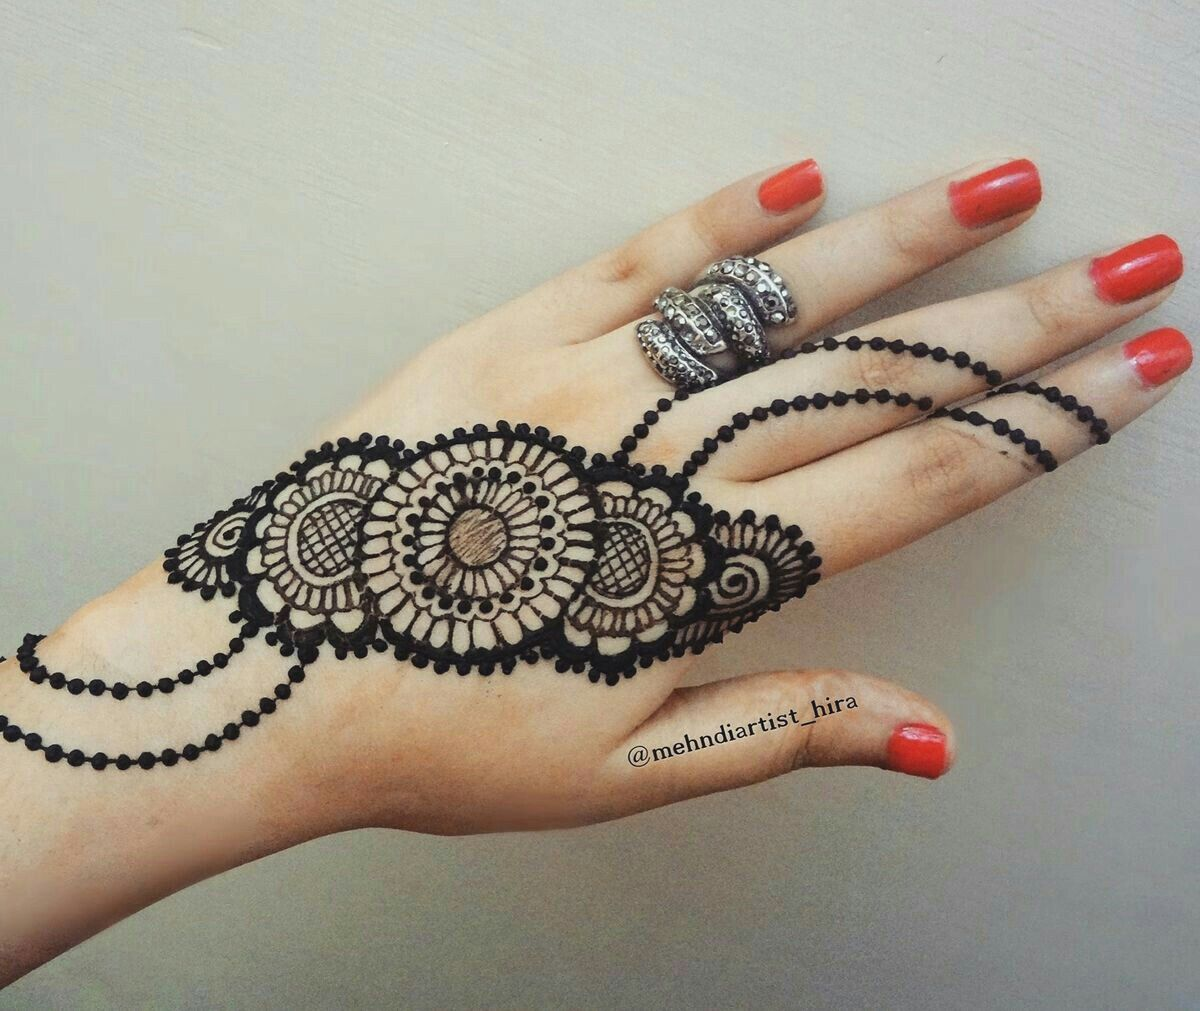 Pin By Asma Naaz On Mehendi Pinterest Henna Designs Henna And